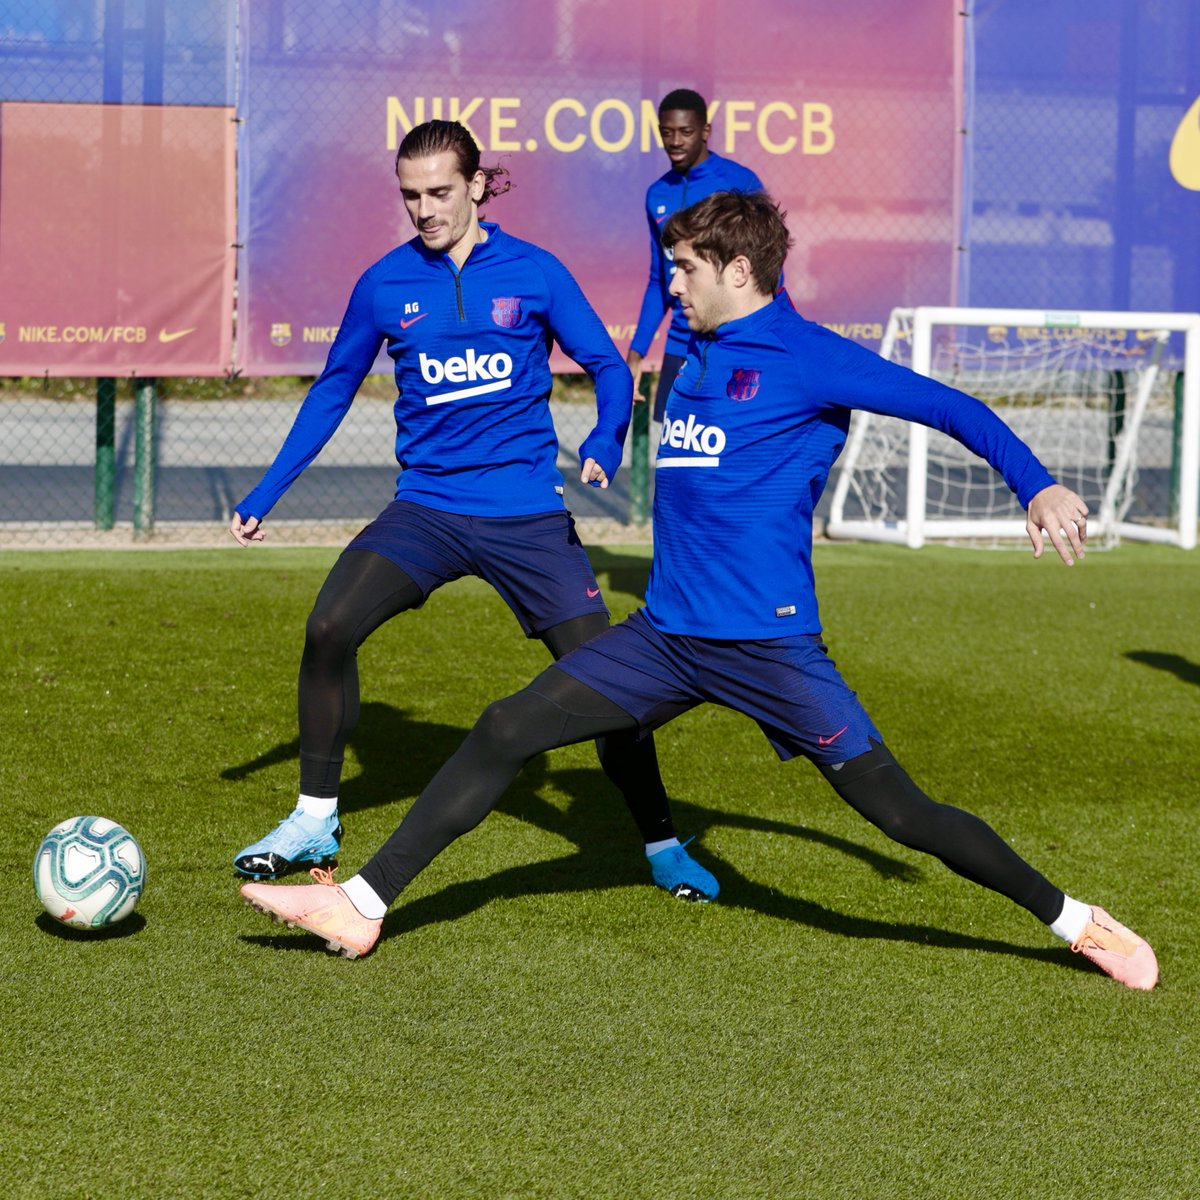 at Tuesday's workout, with  @AntoGriezmann,  @SergiRoberto10, and  @Dembouz.